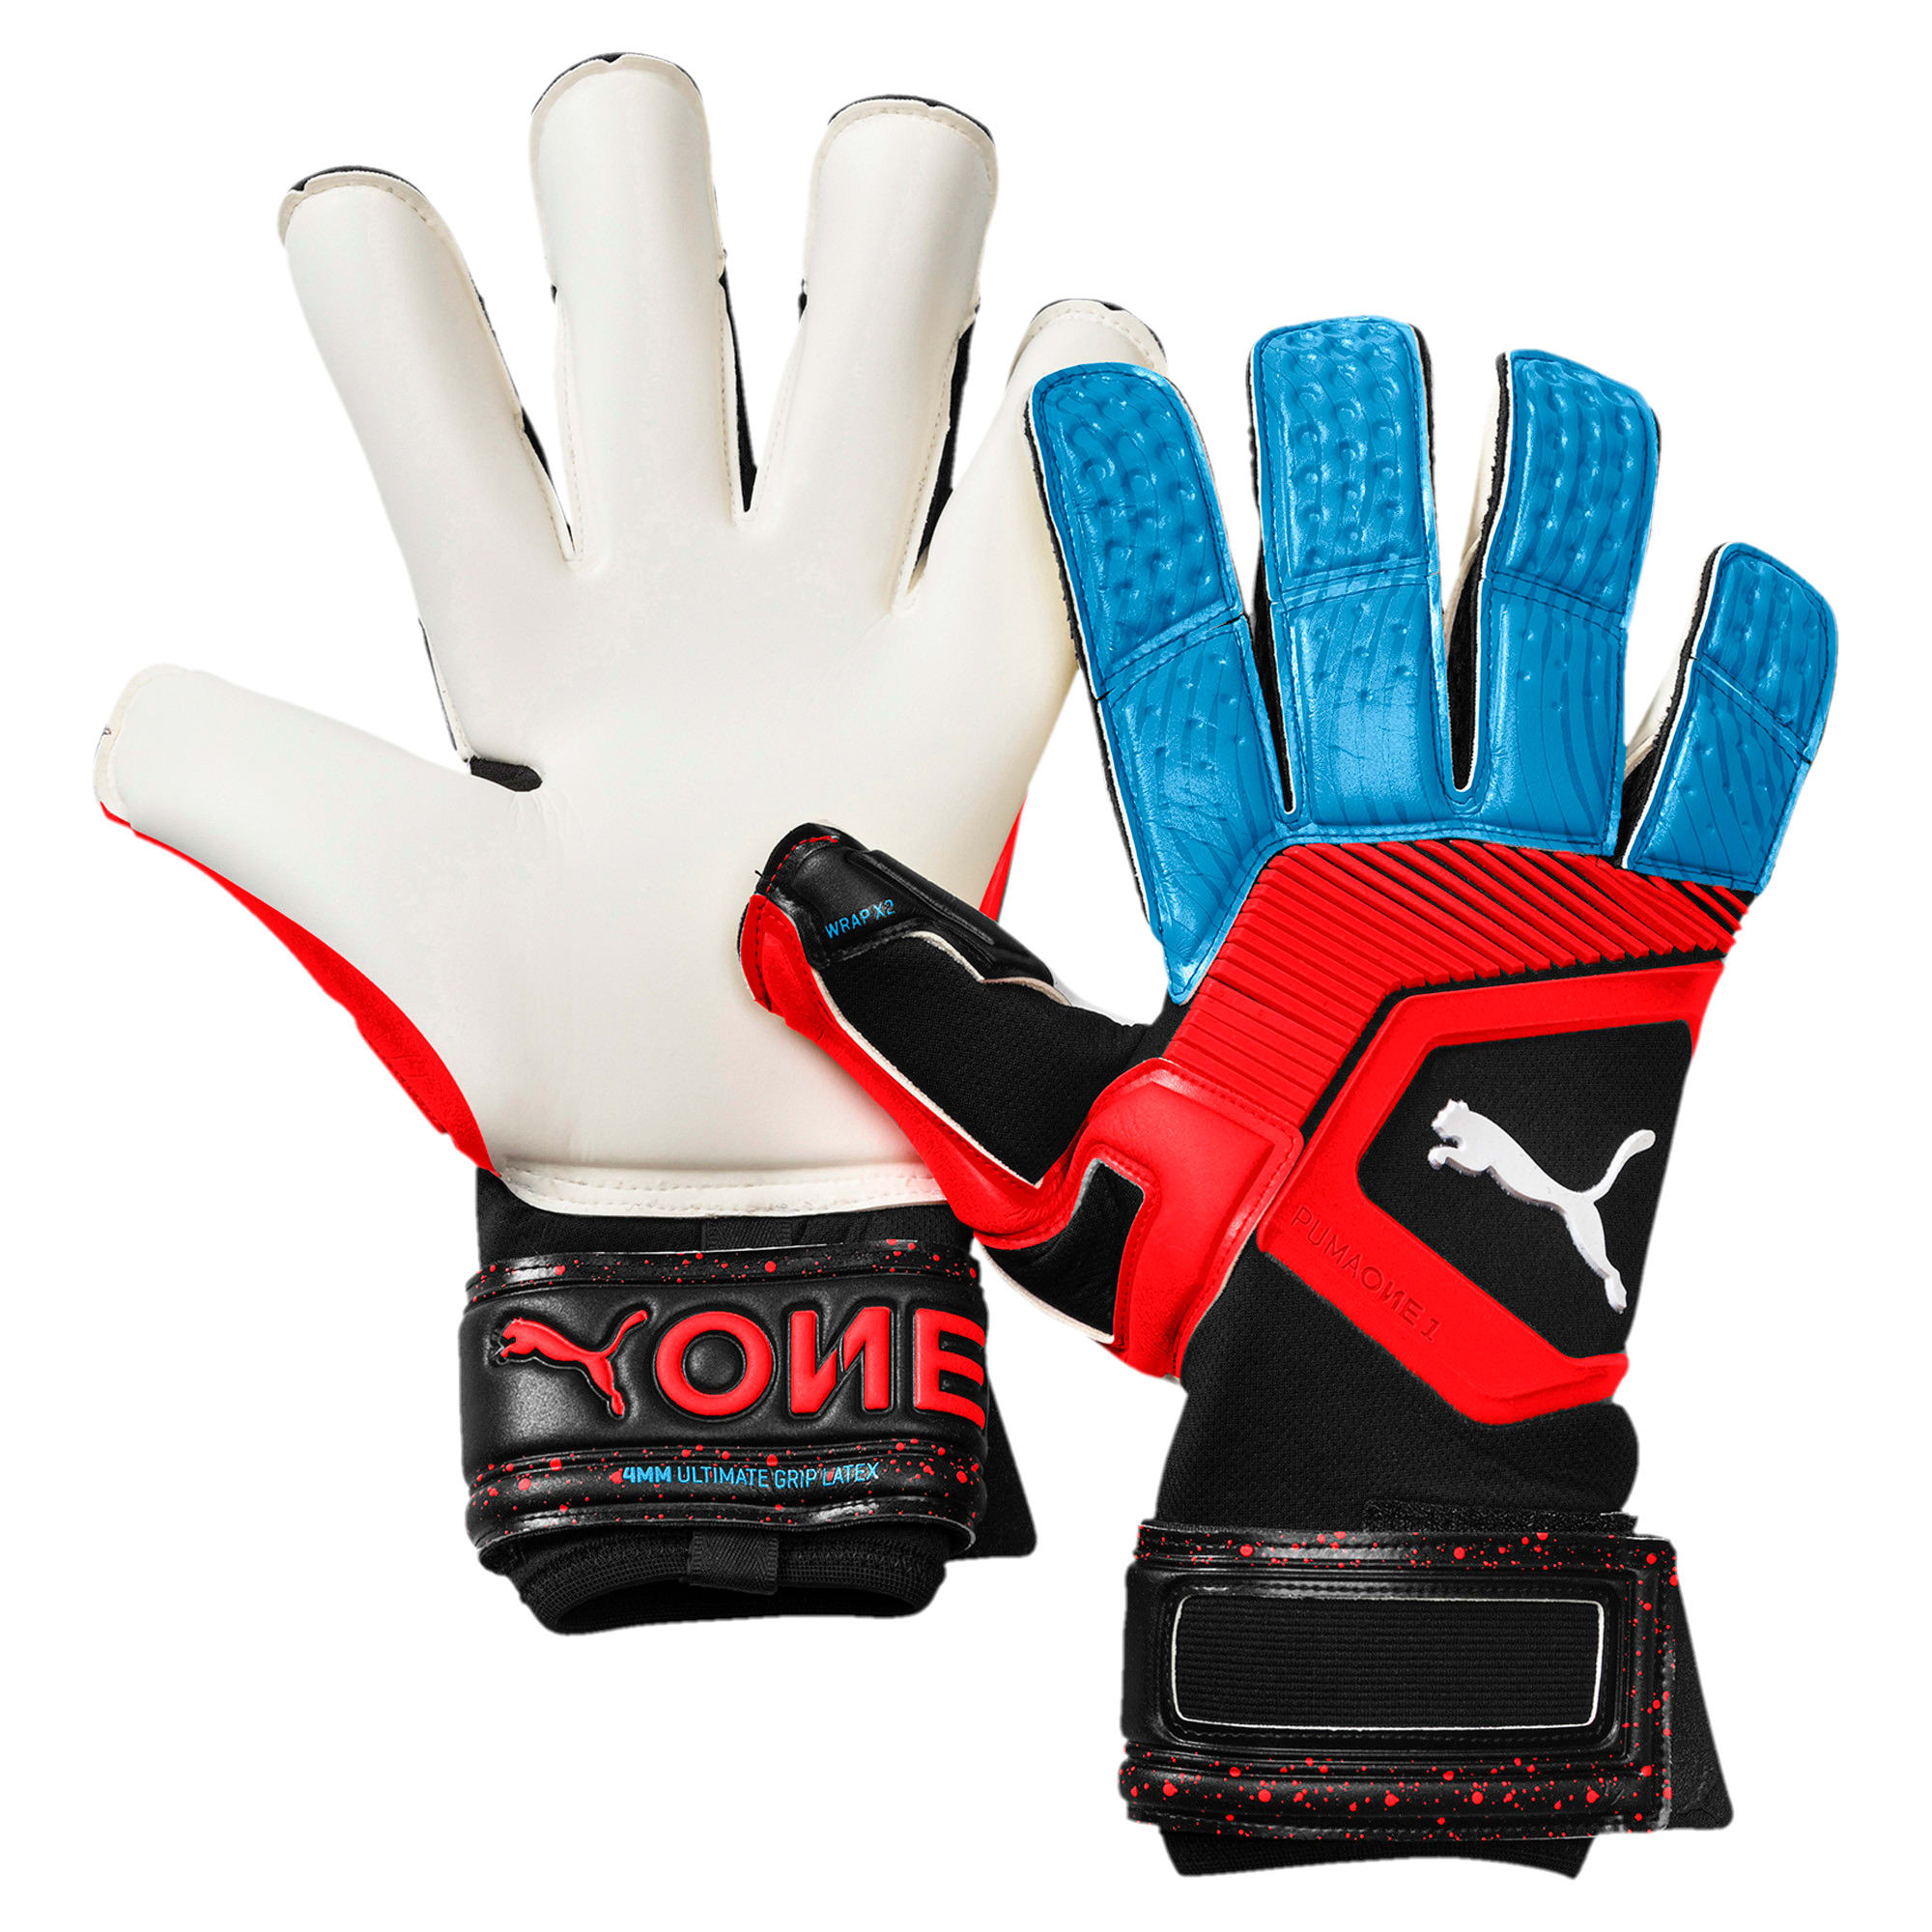 Thumbnail 1 of PUMA ONE Grip 1 Hybrid Pro Fußball Torwarthandschuhe, Black-Bleu Azur-Red Blast, medium